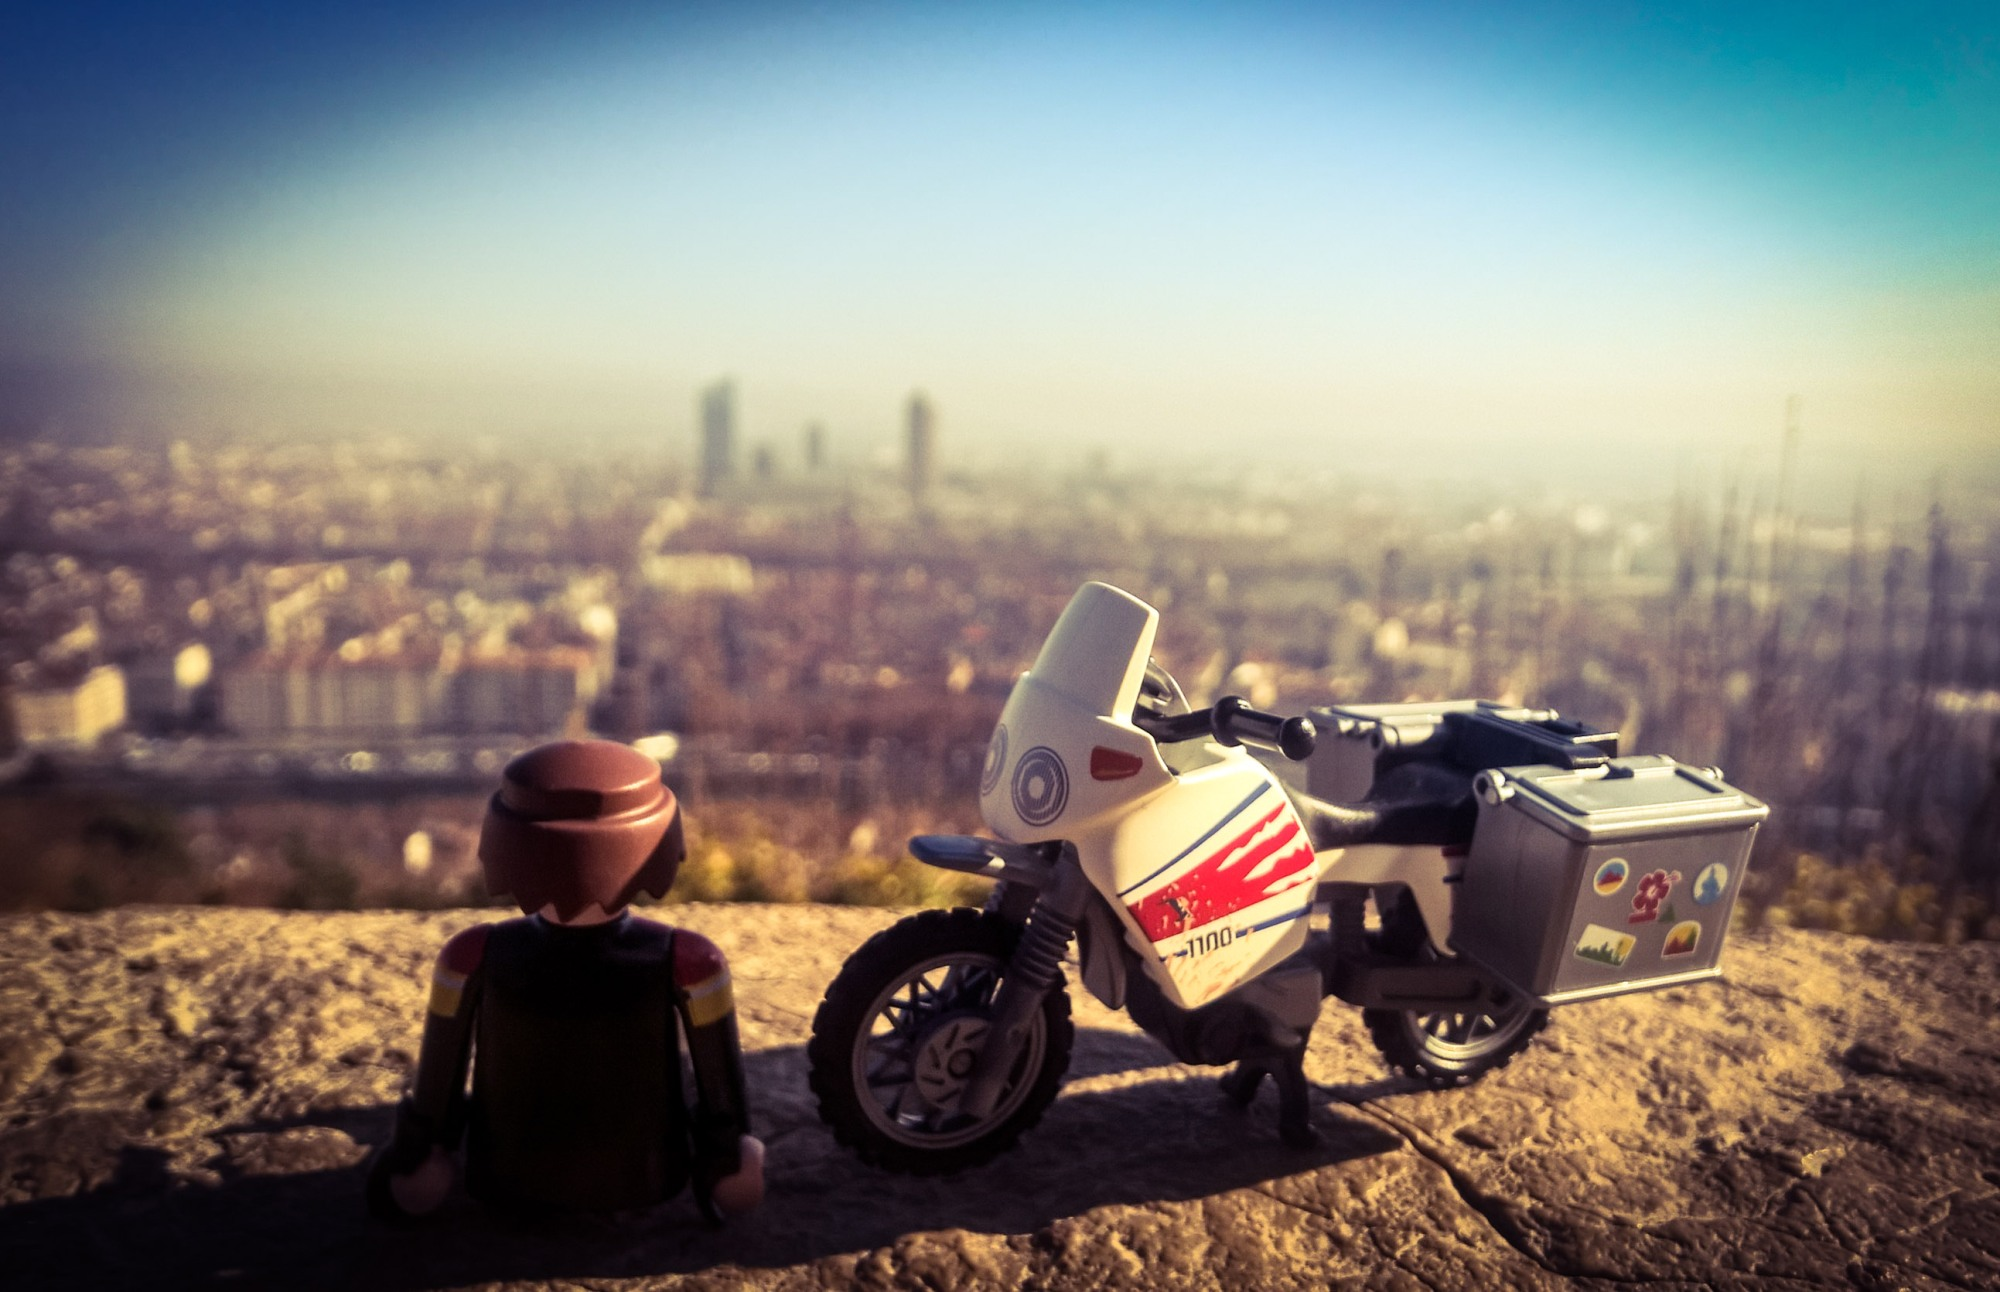 Playmobil photography in Lyon, France